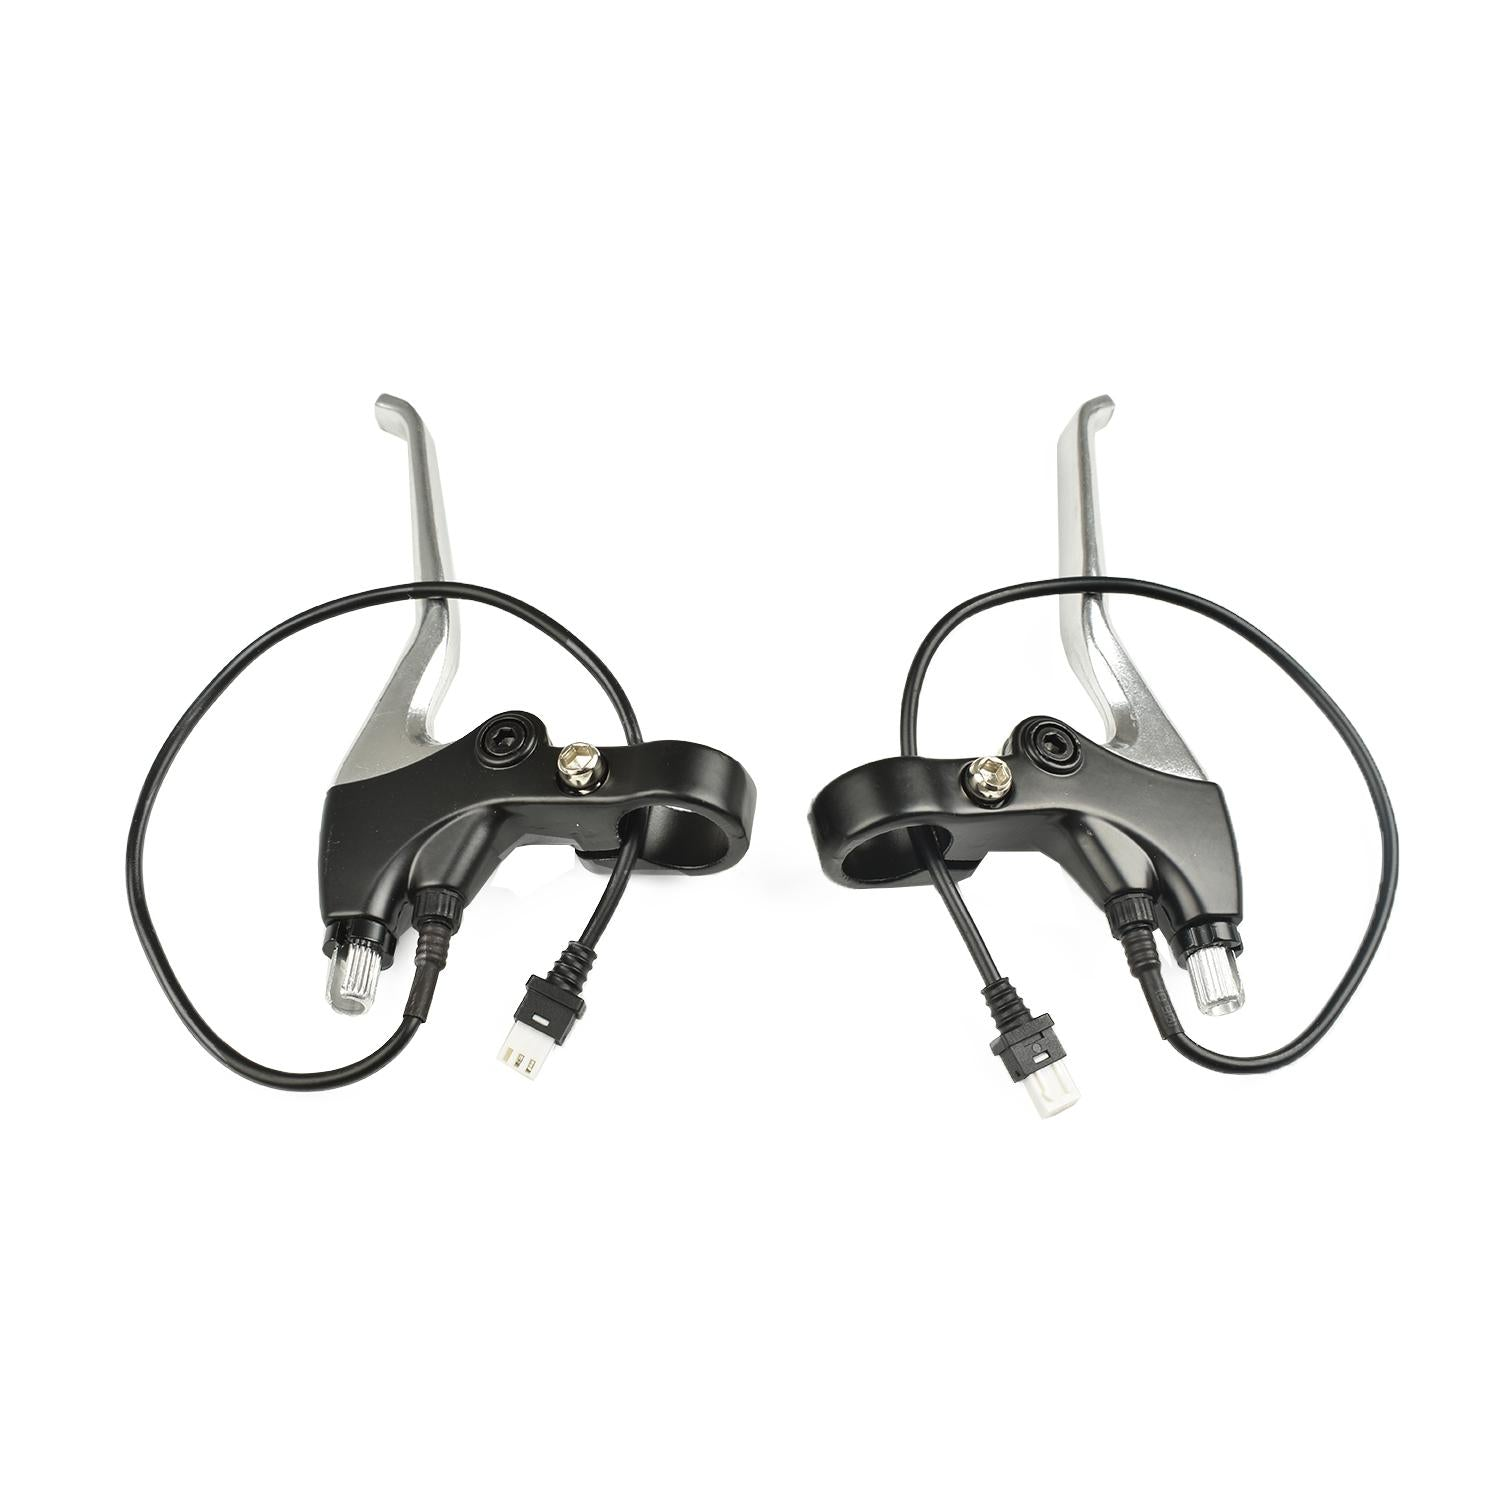 Stock Brake Levers w/ E-brake Sensor for TSDZ2 (VLCD-5 Display Only) w/ Black - OR - Silver Lever